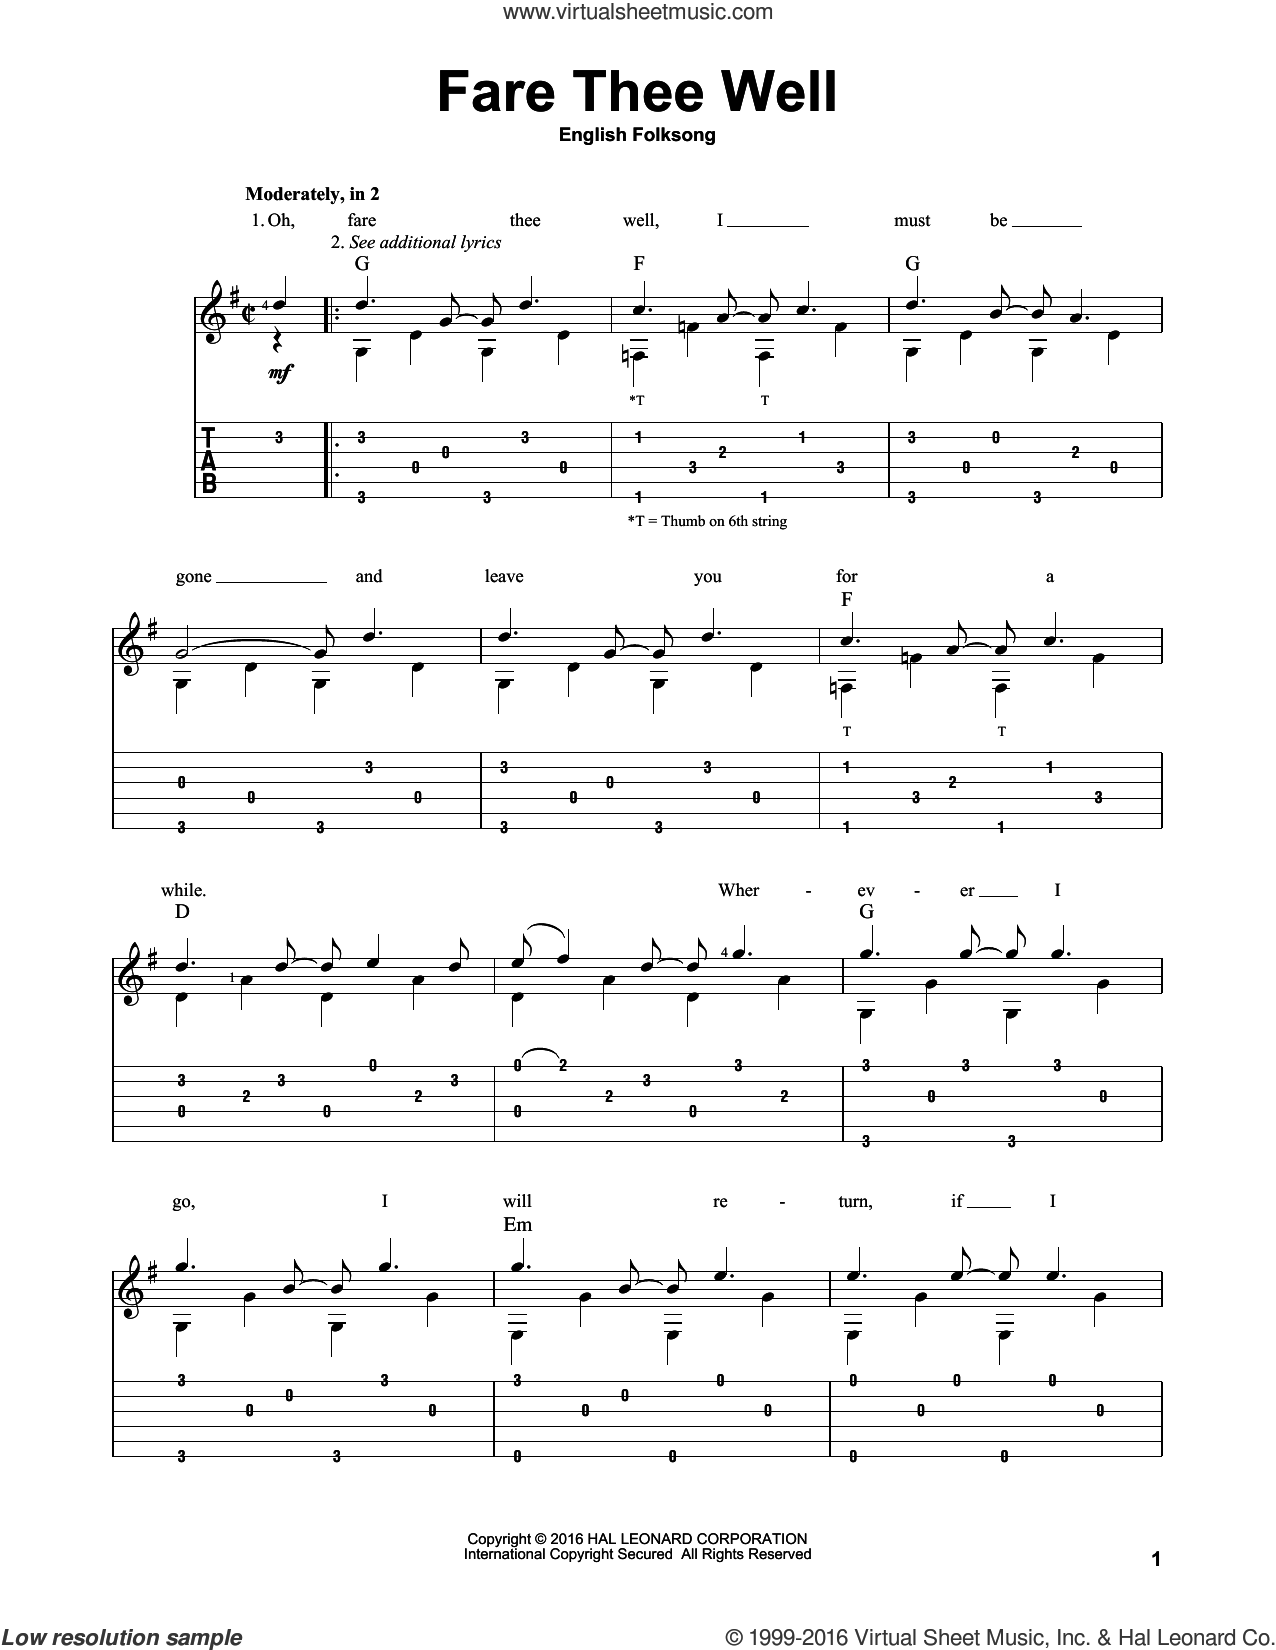 Fare Thee Well sheet music for guitar solo. Score Image Preview.